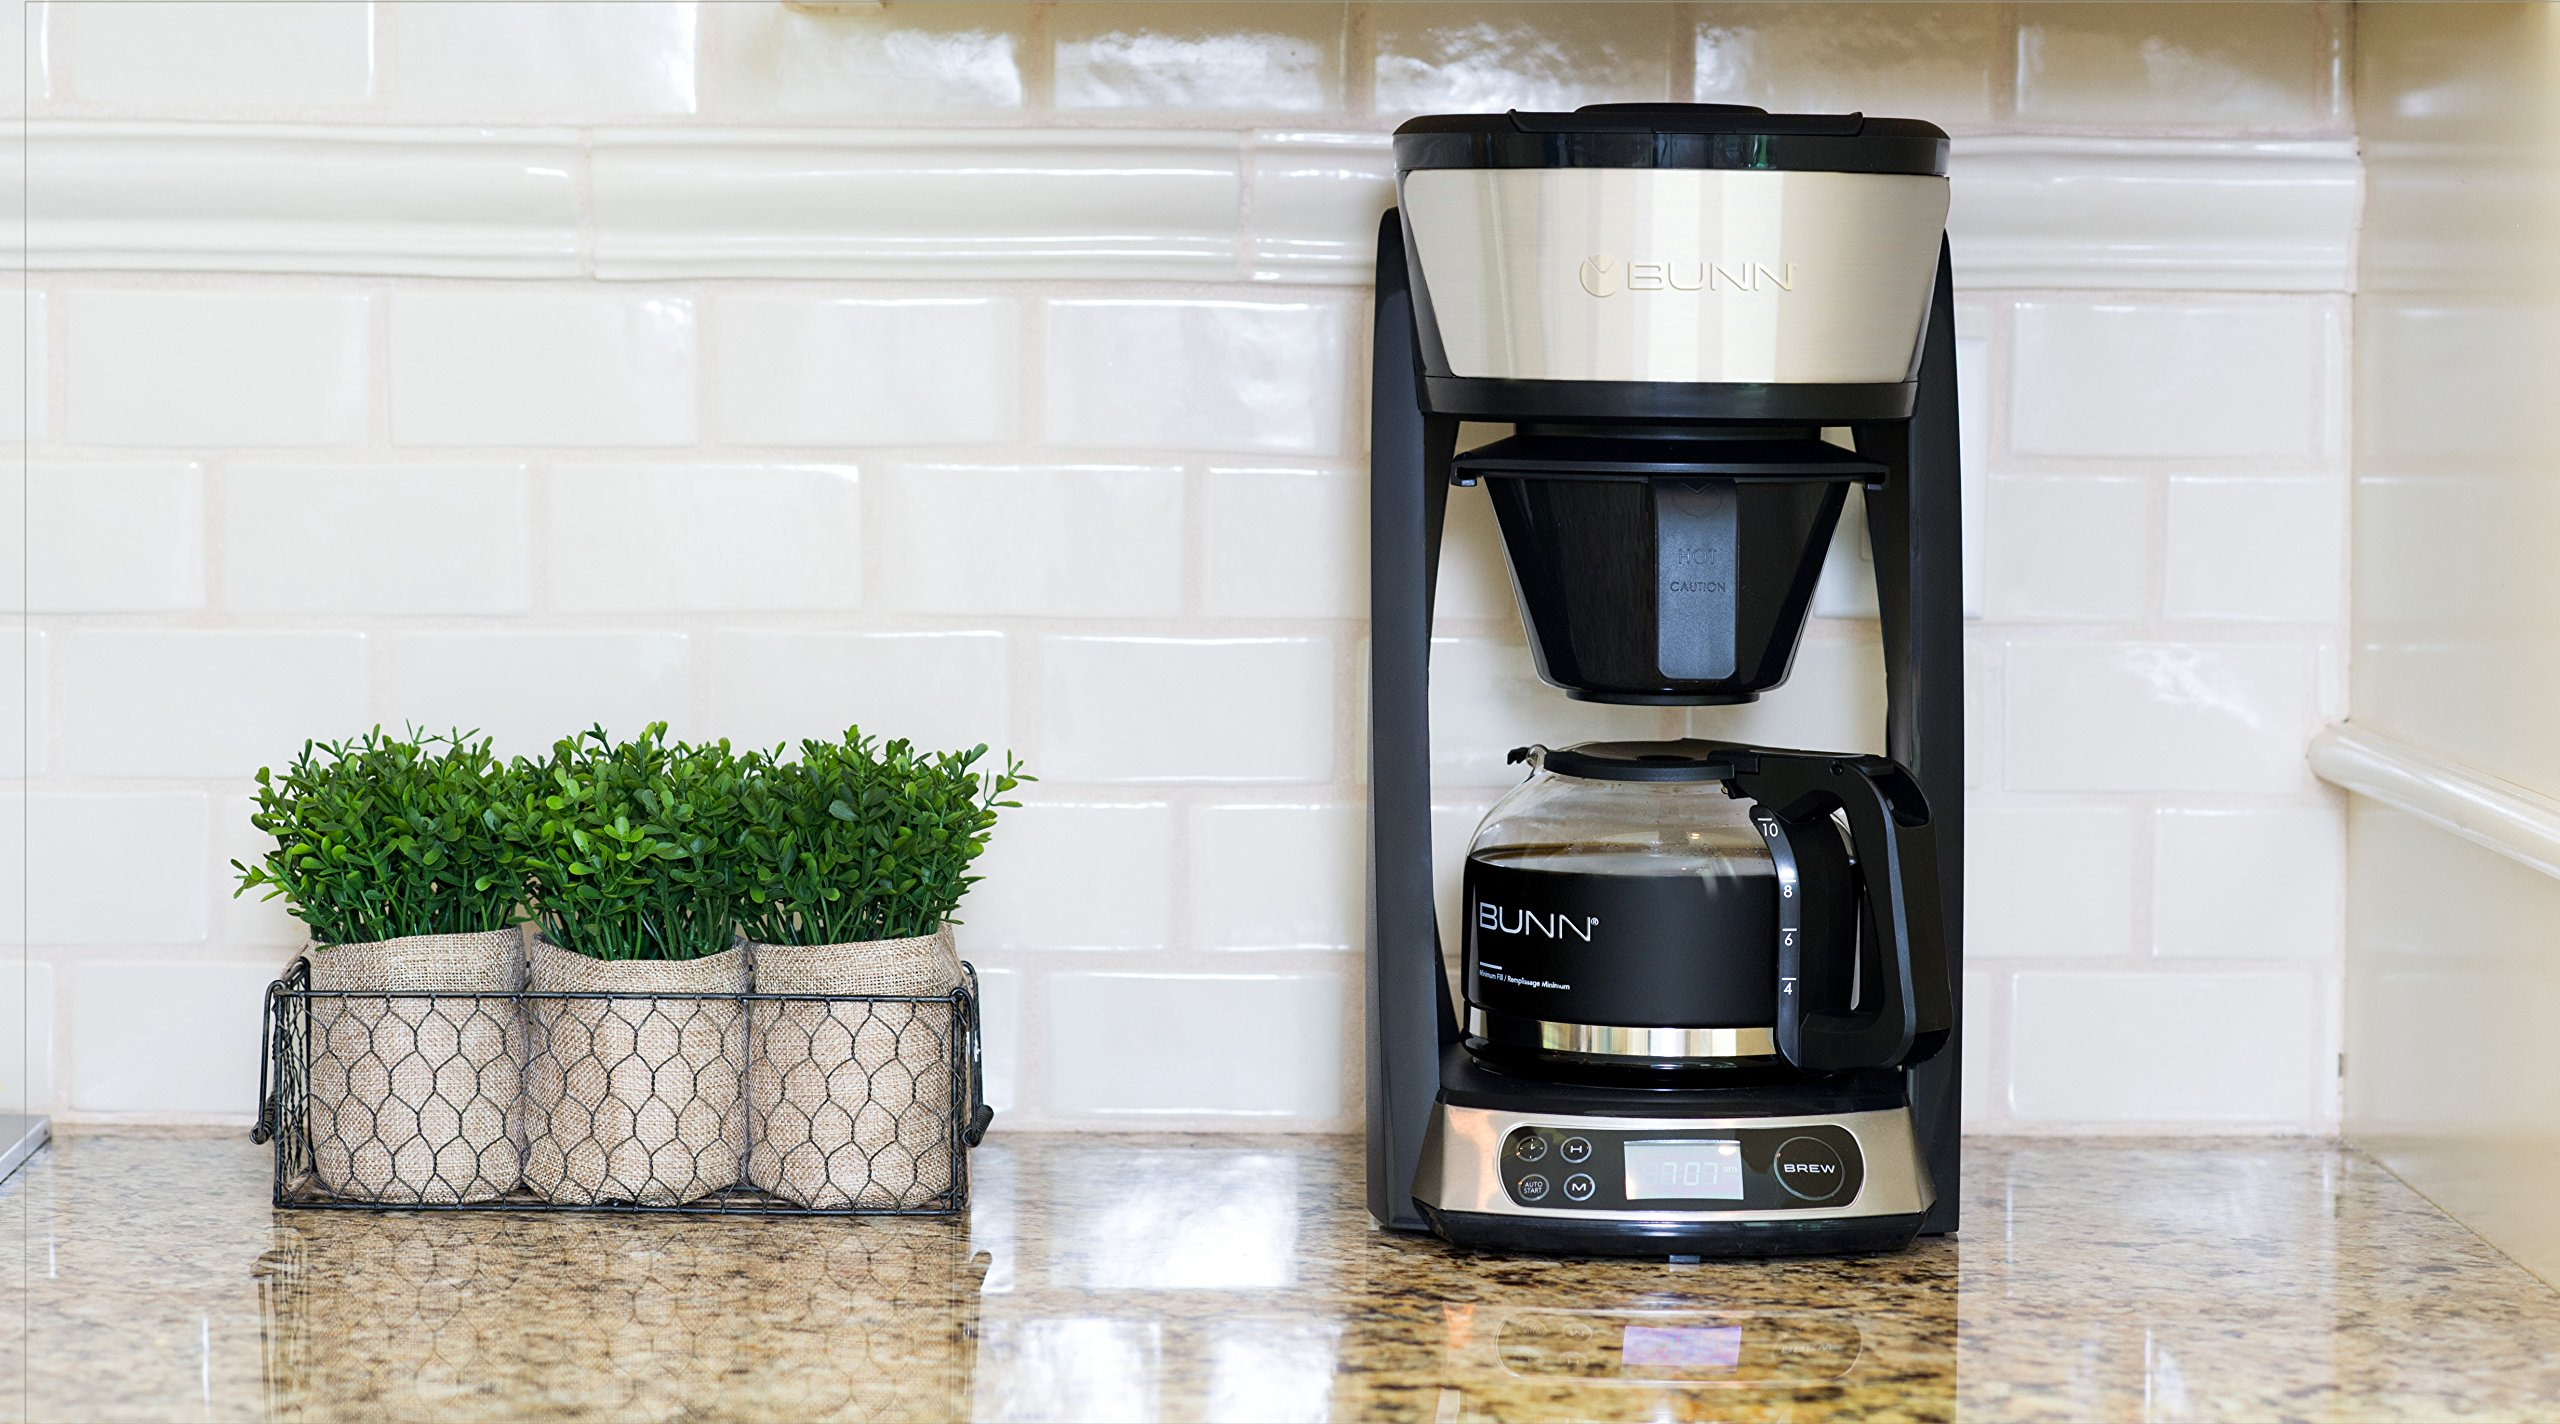 BUNN HB Heat N Brew Programmable Coffee Maker 10 cup Stainless Steel by BUNN (Image #4)